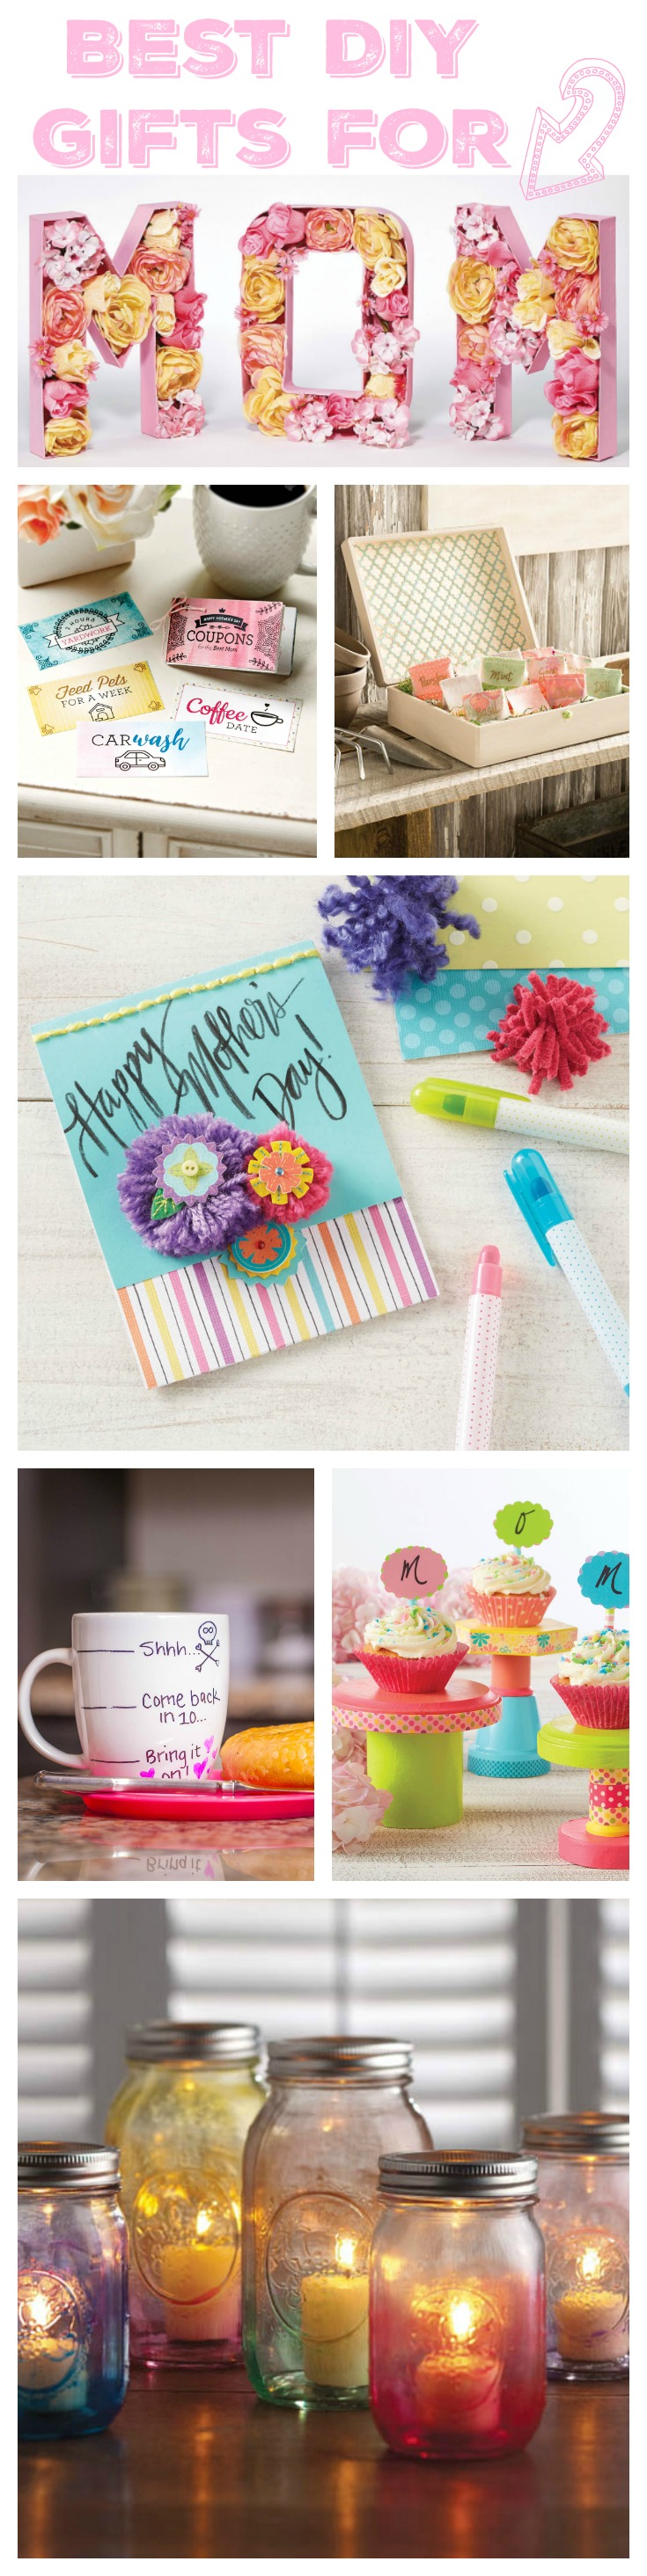 DIY Mom Gifts